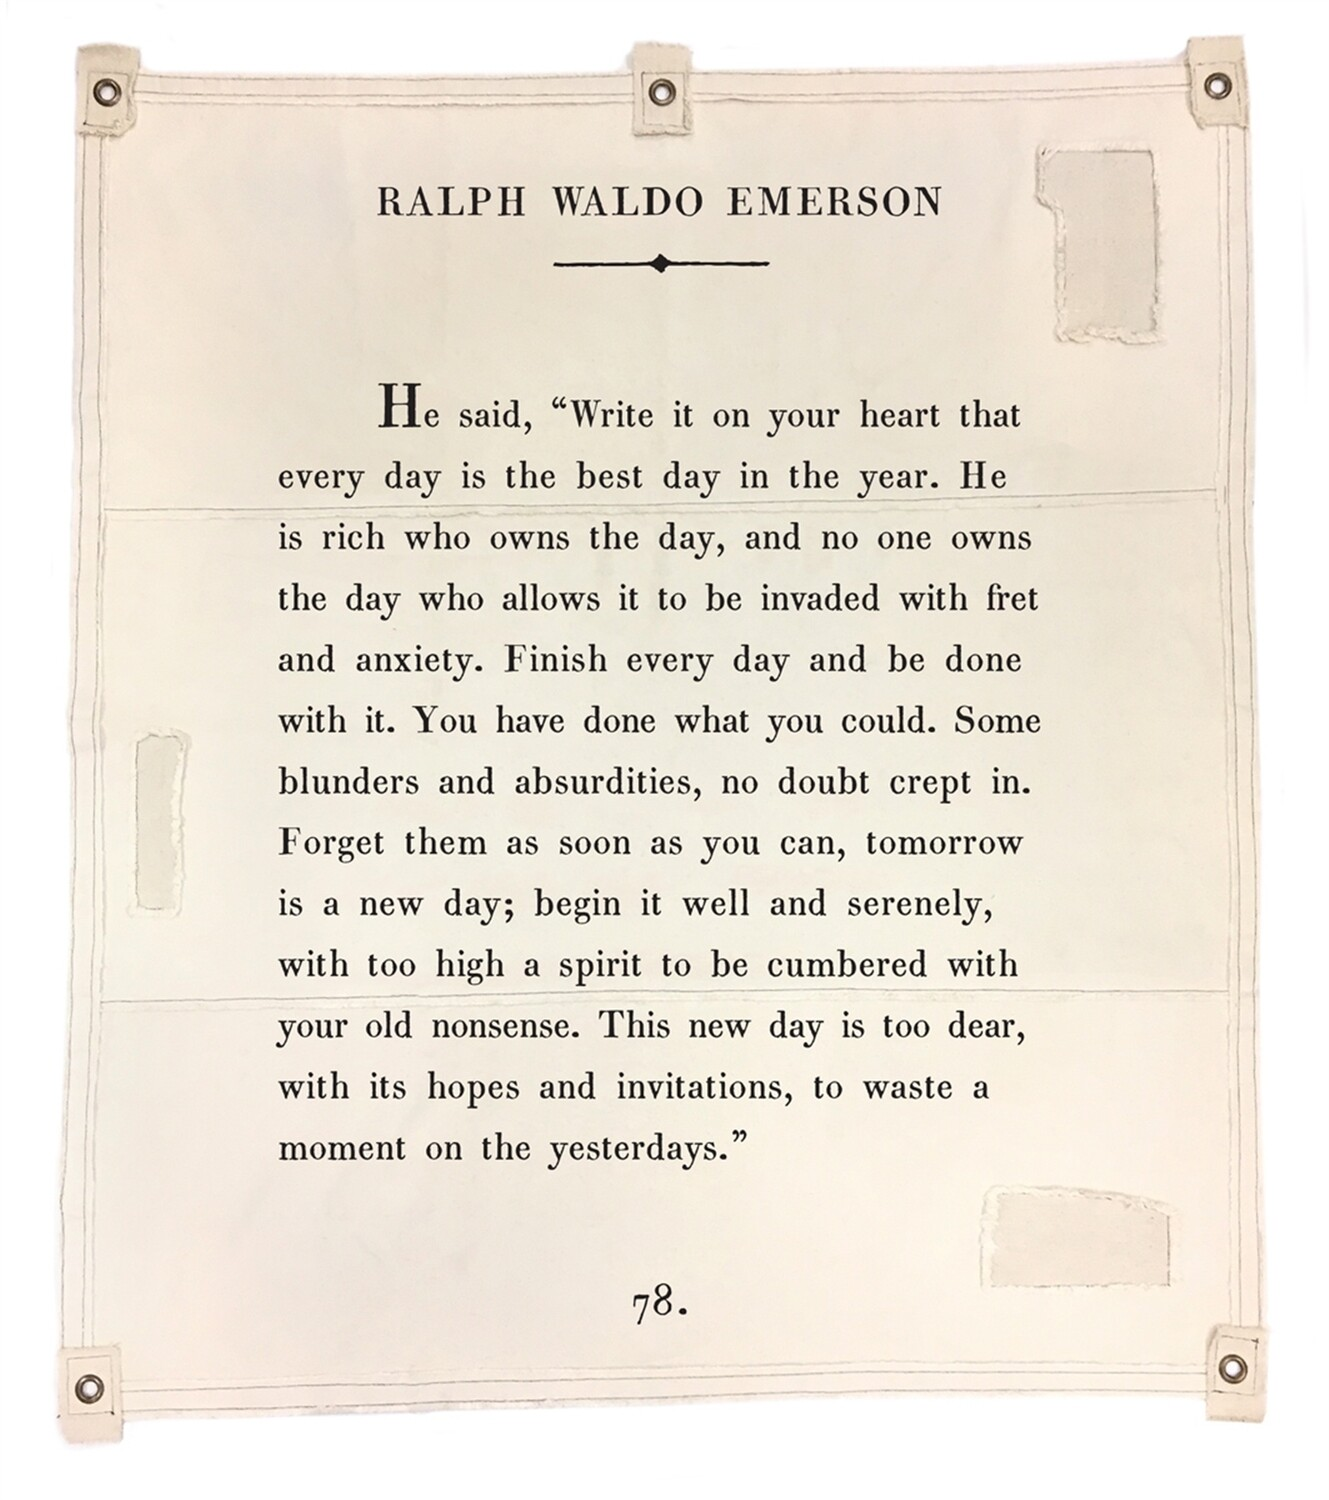 BOOK PAGE TAPESTRY TARP ART - Ralph Waldo Emerson